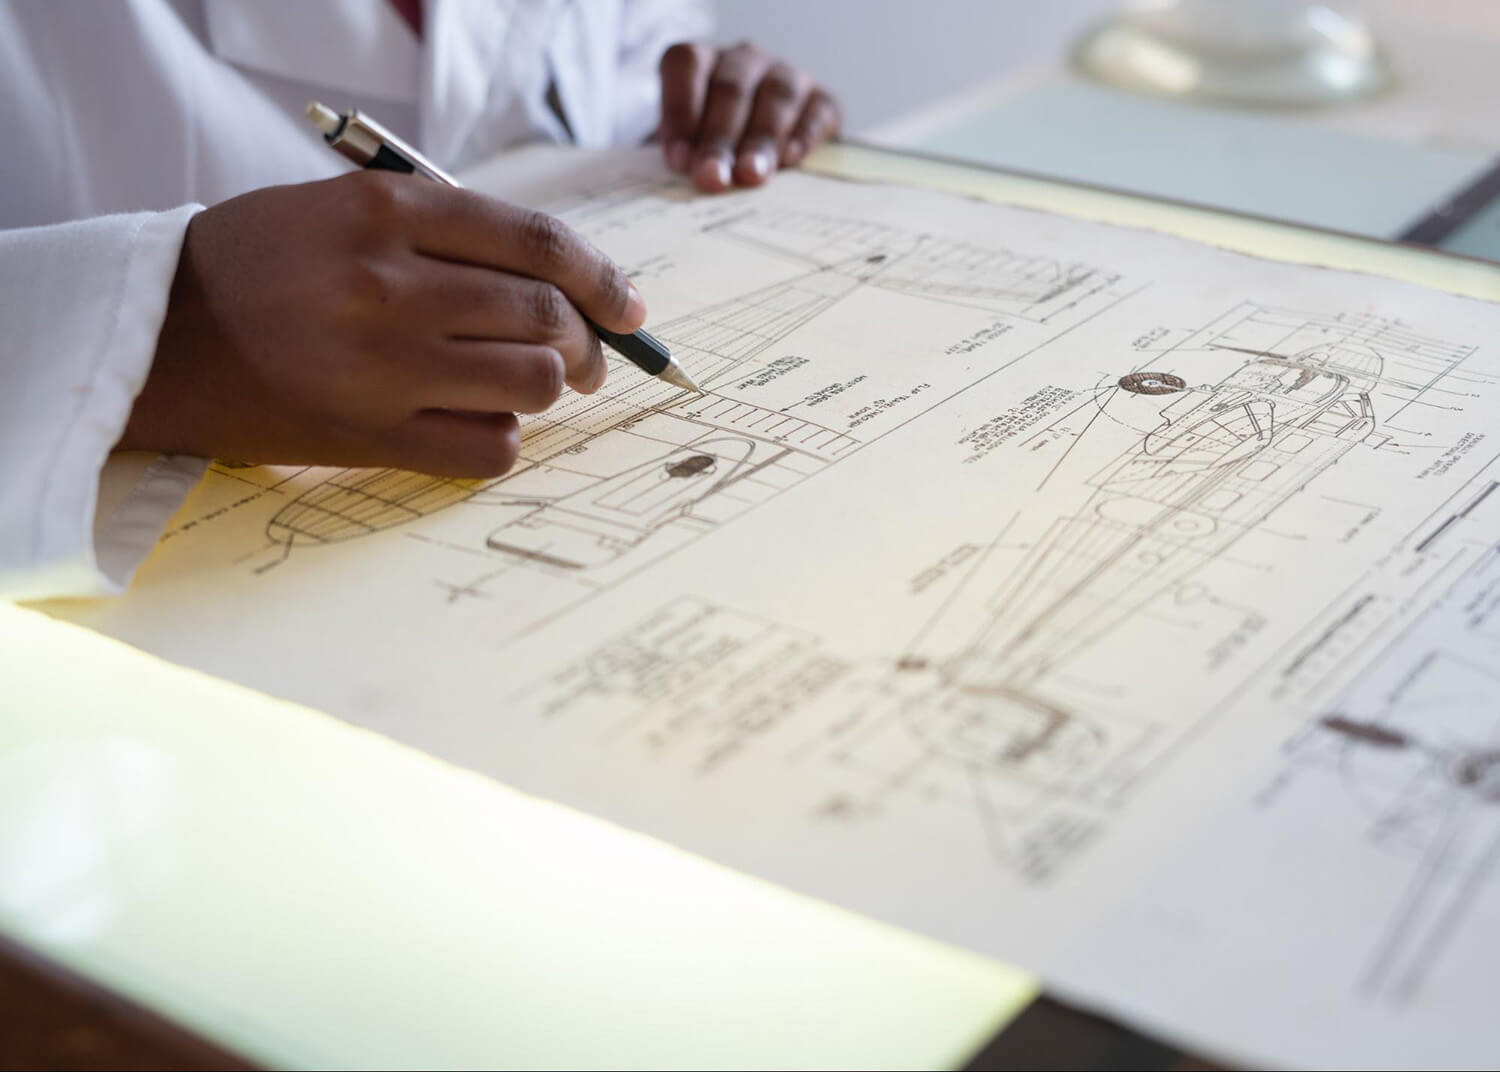 Student working on a diagram